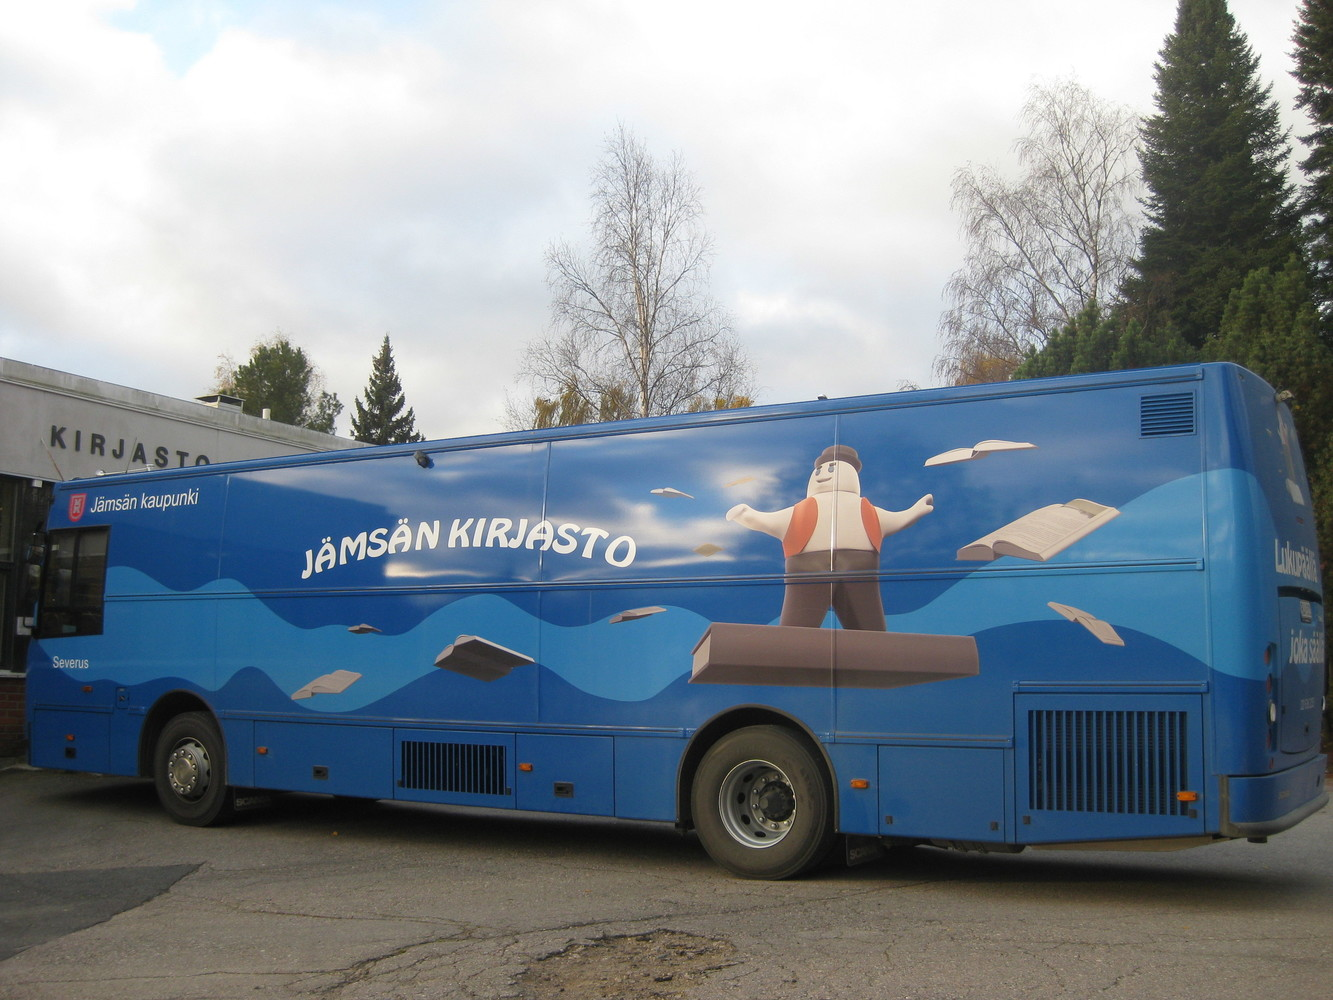 Mobile Library (Jämsä)